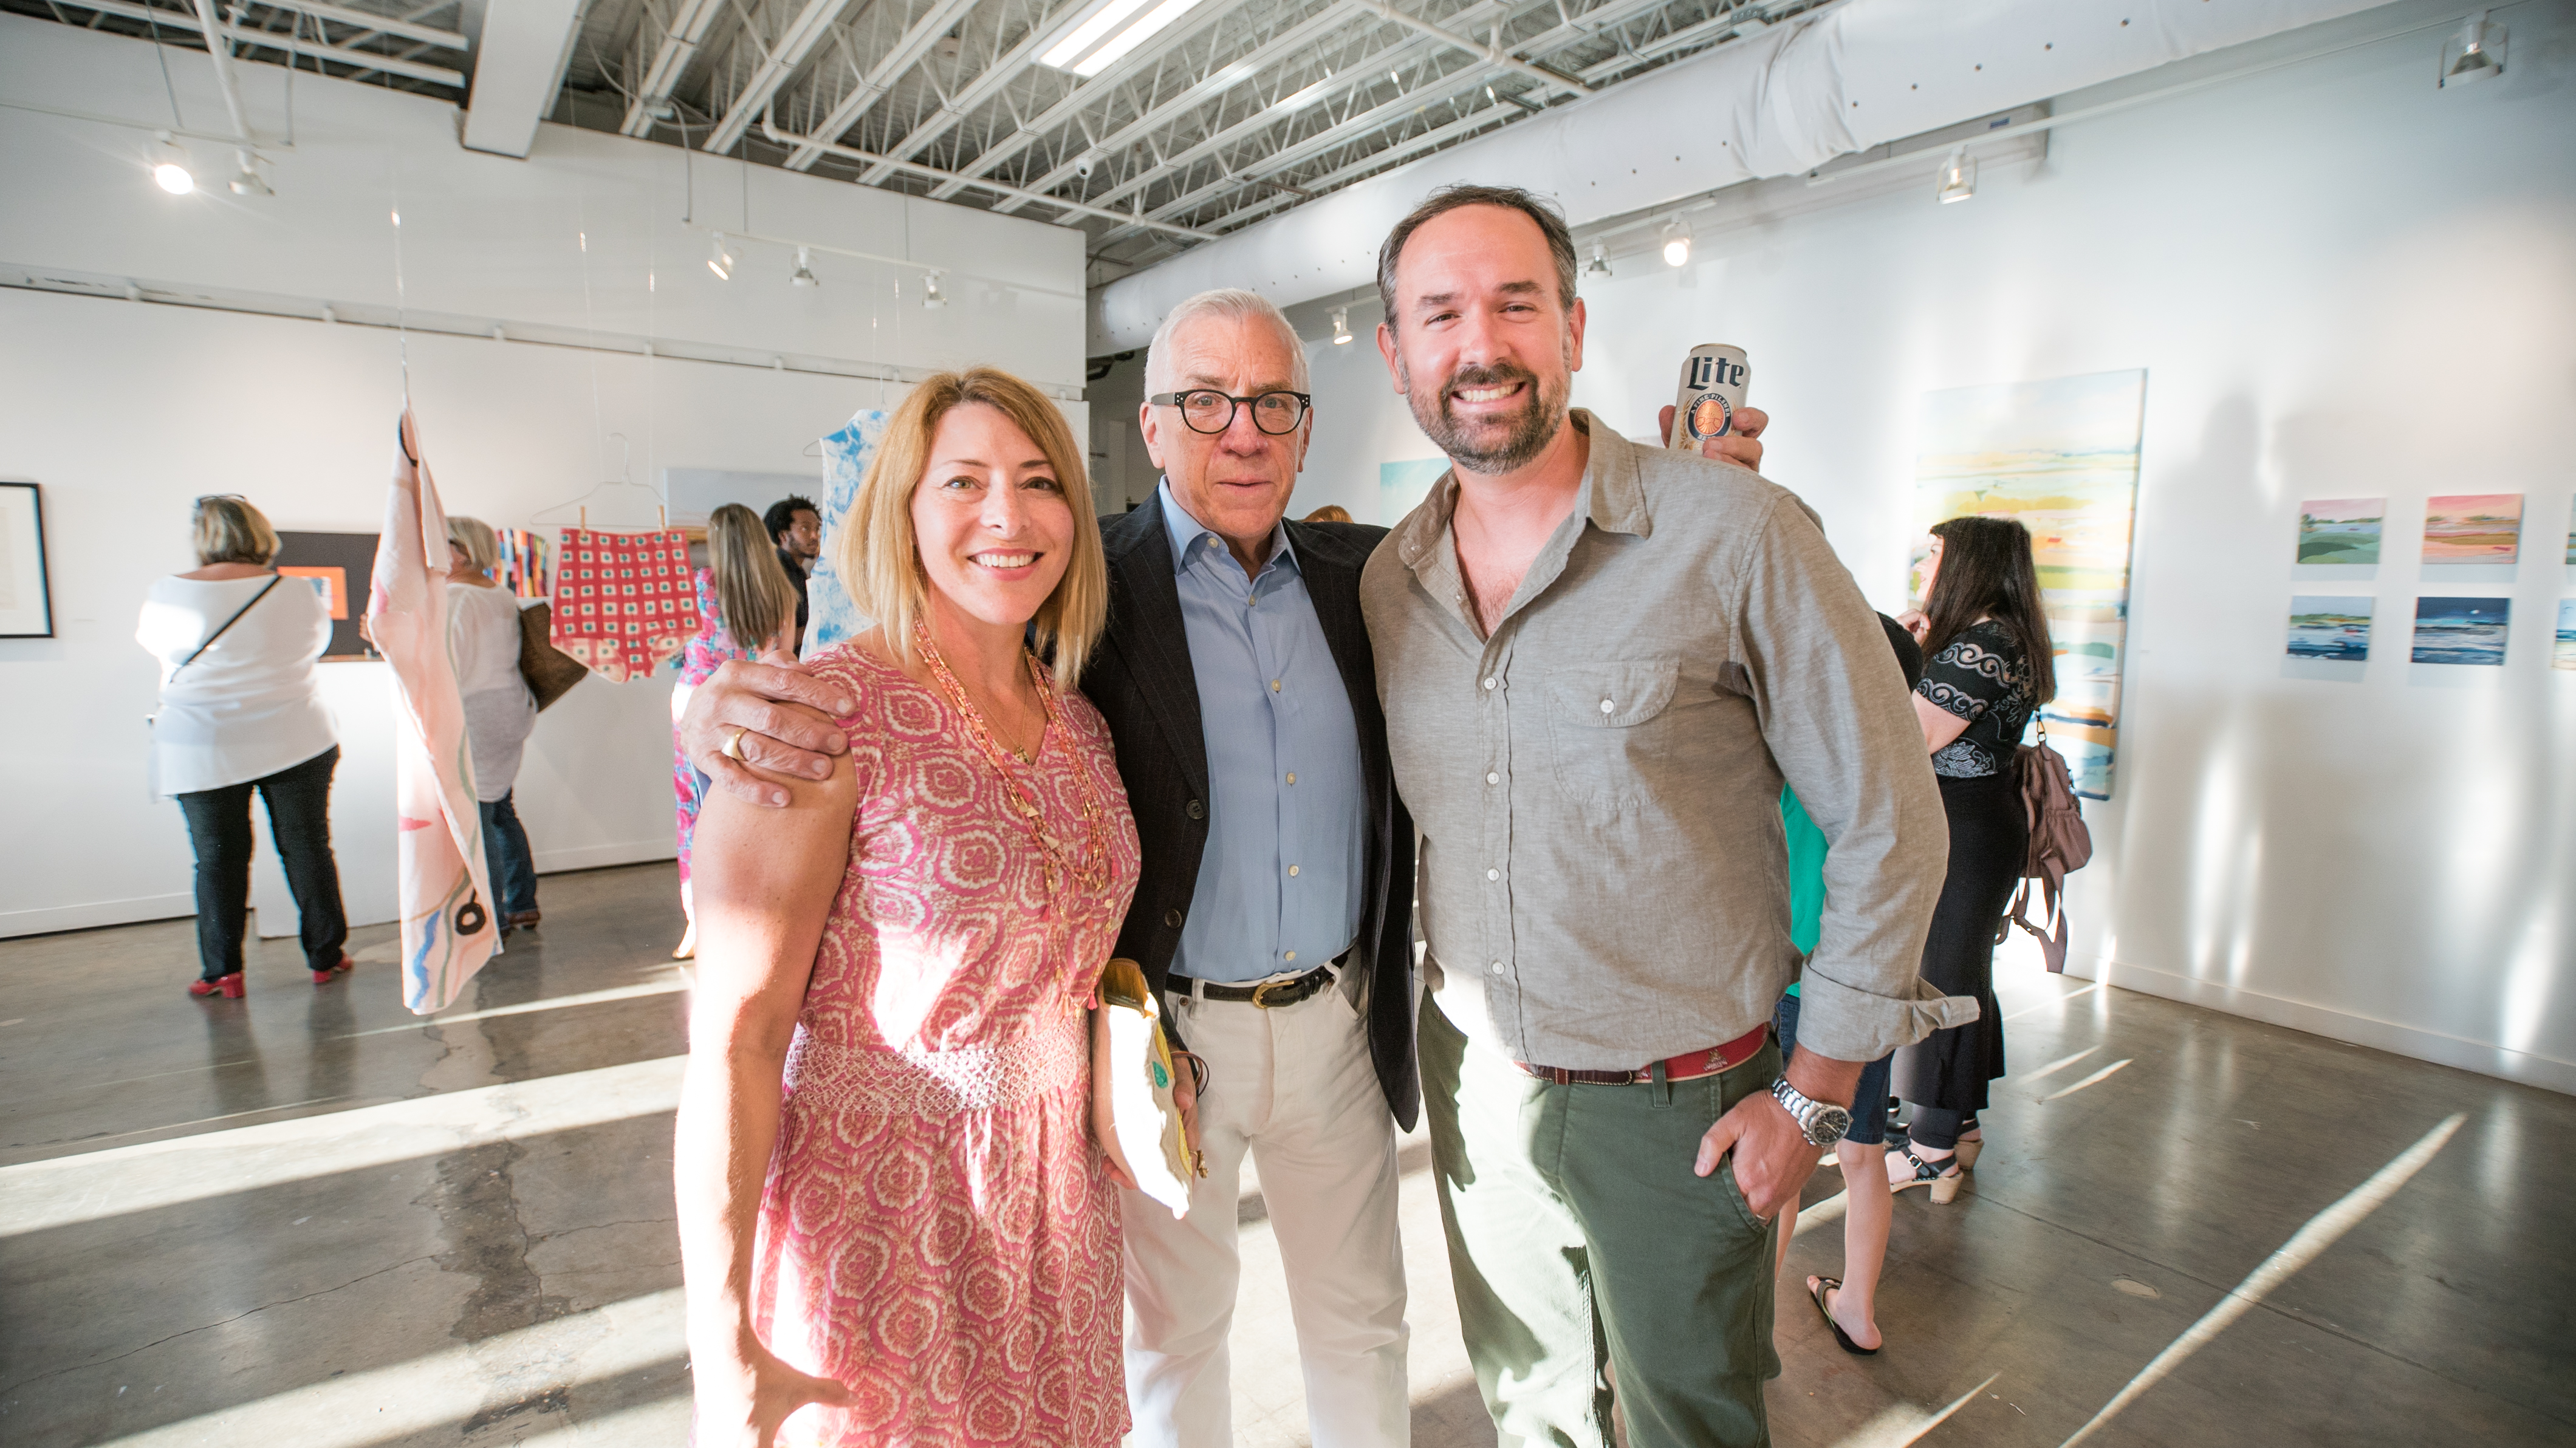 Curator Terry Fox of Charleston Arts Festival (center) with artists Karin Olah and Joel Parker